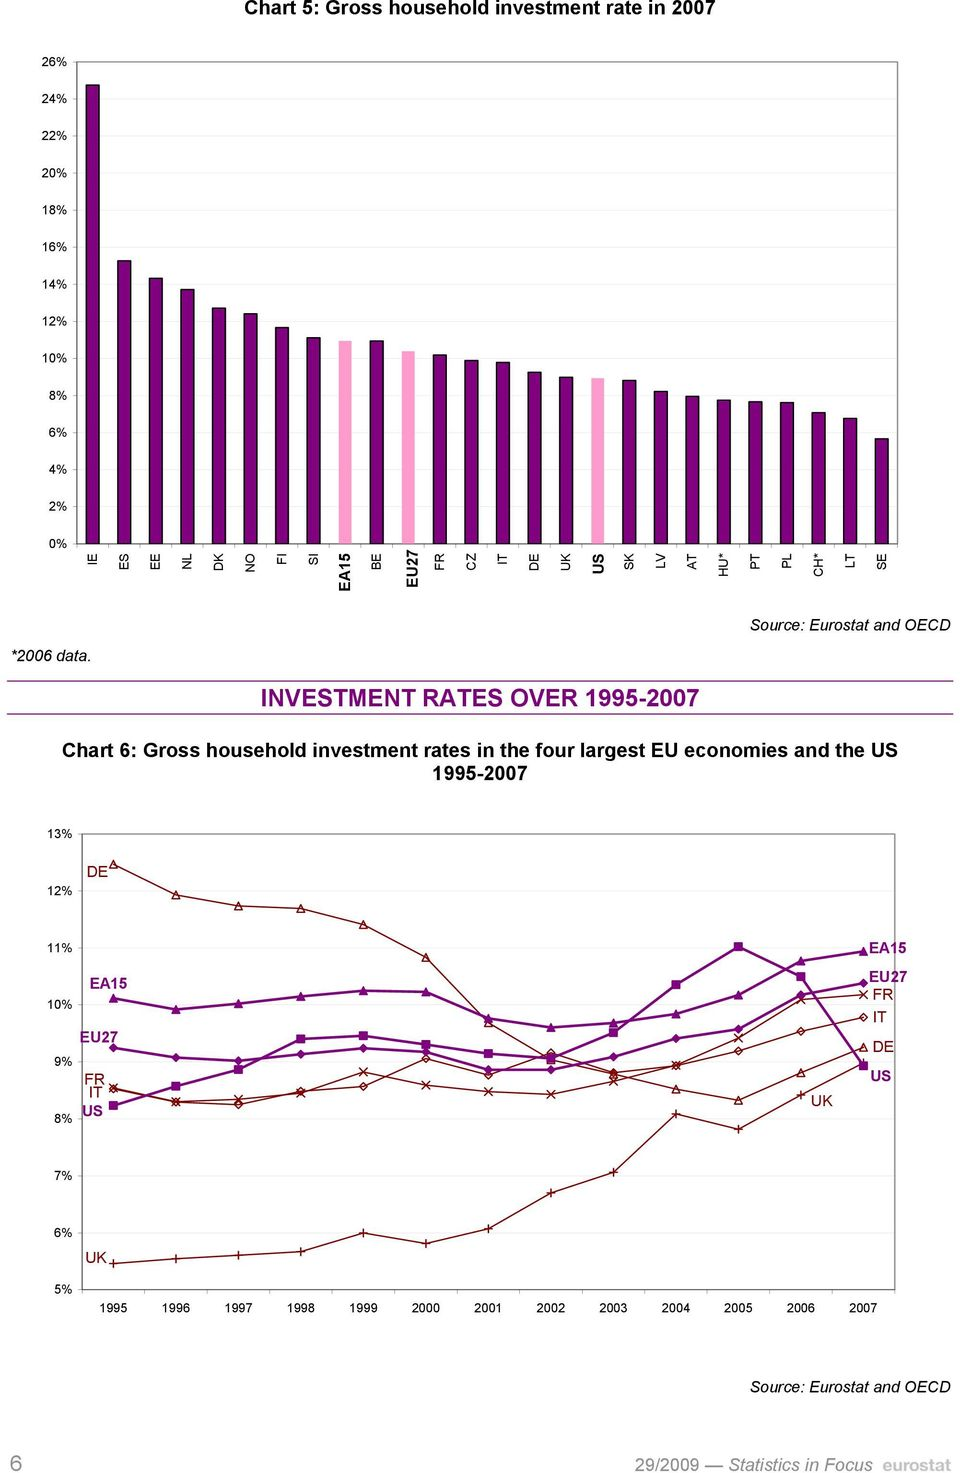 INVESTMENT RATES OVER 1995-2007 Chart 6: Gross household investment rates in the four largest EU